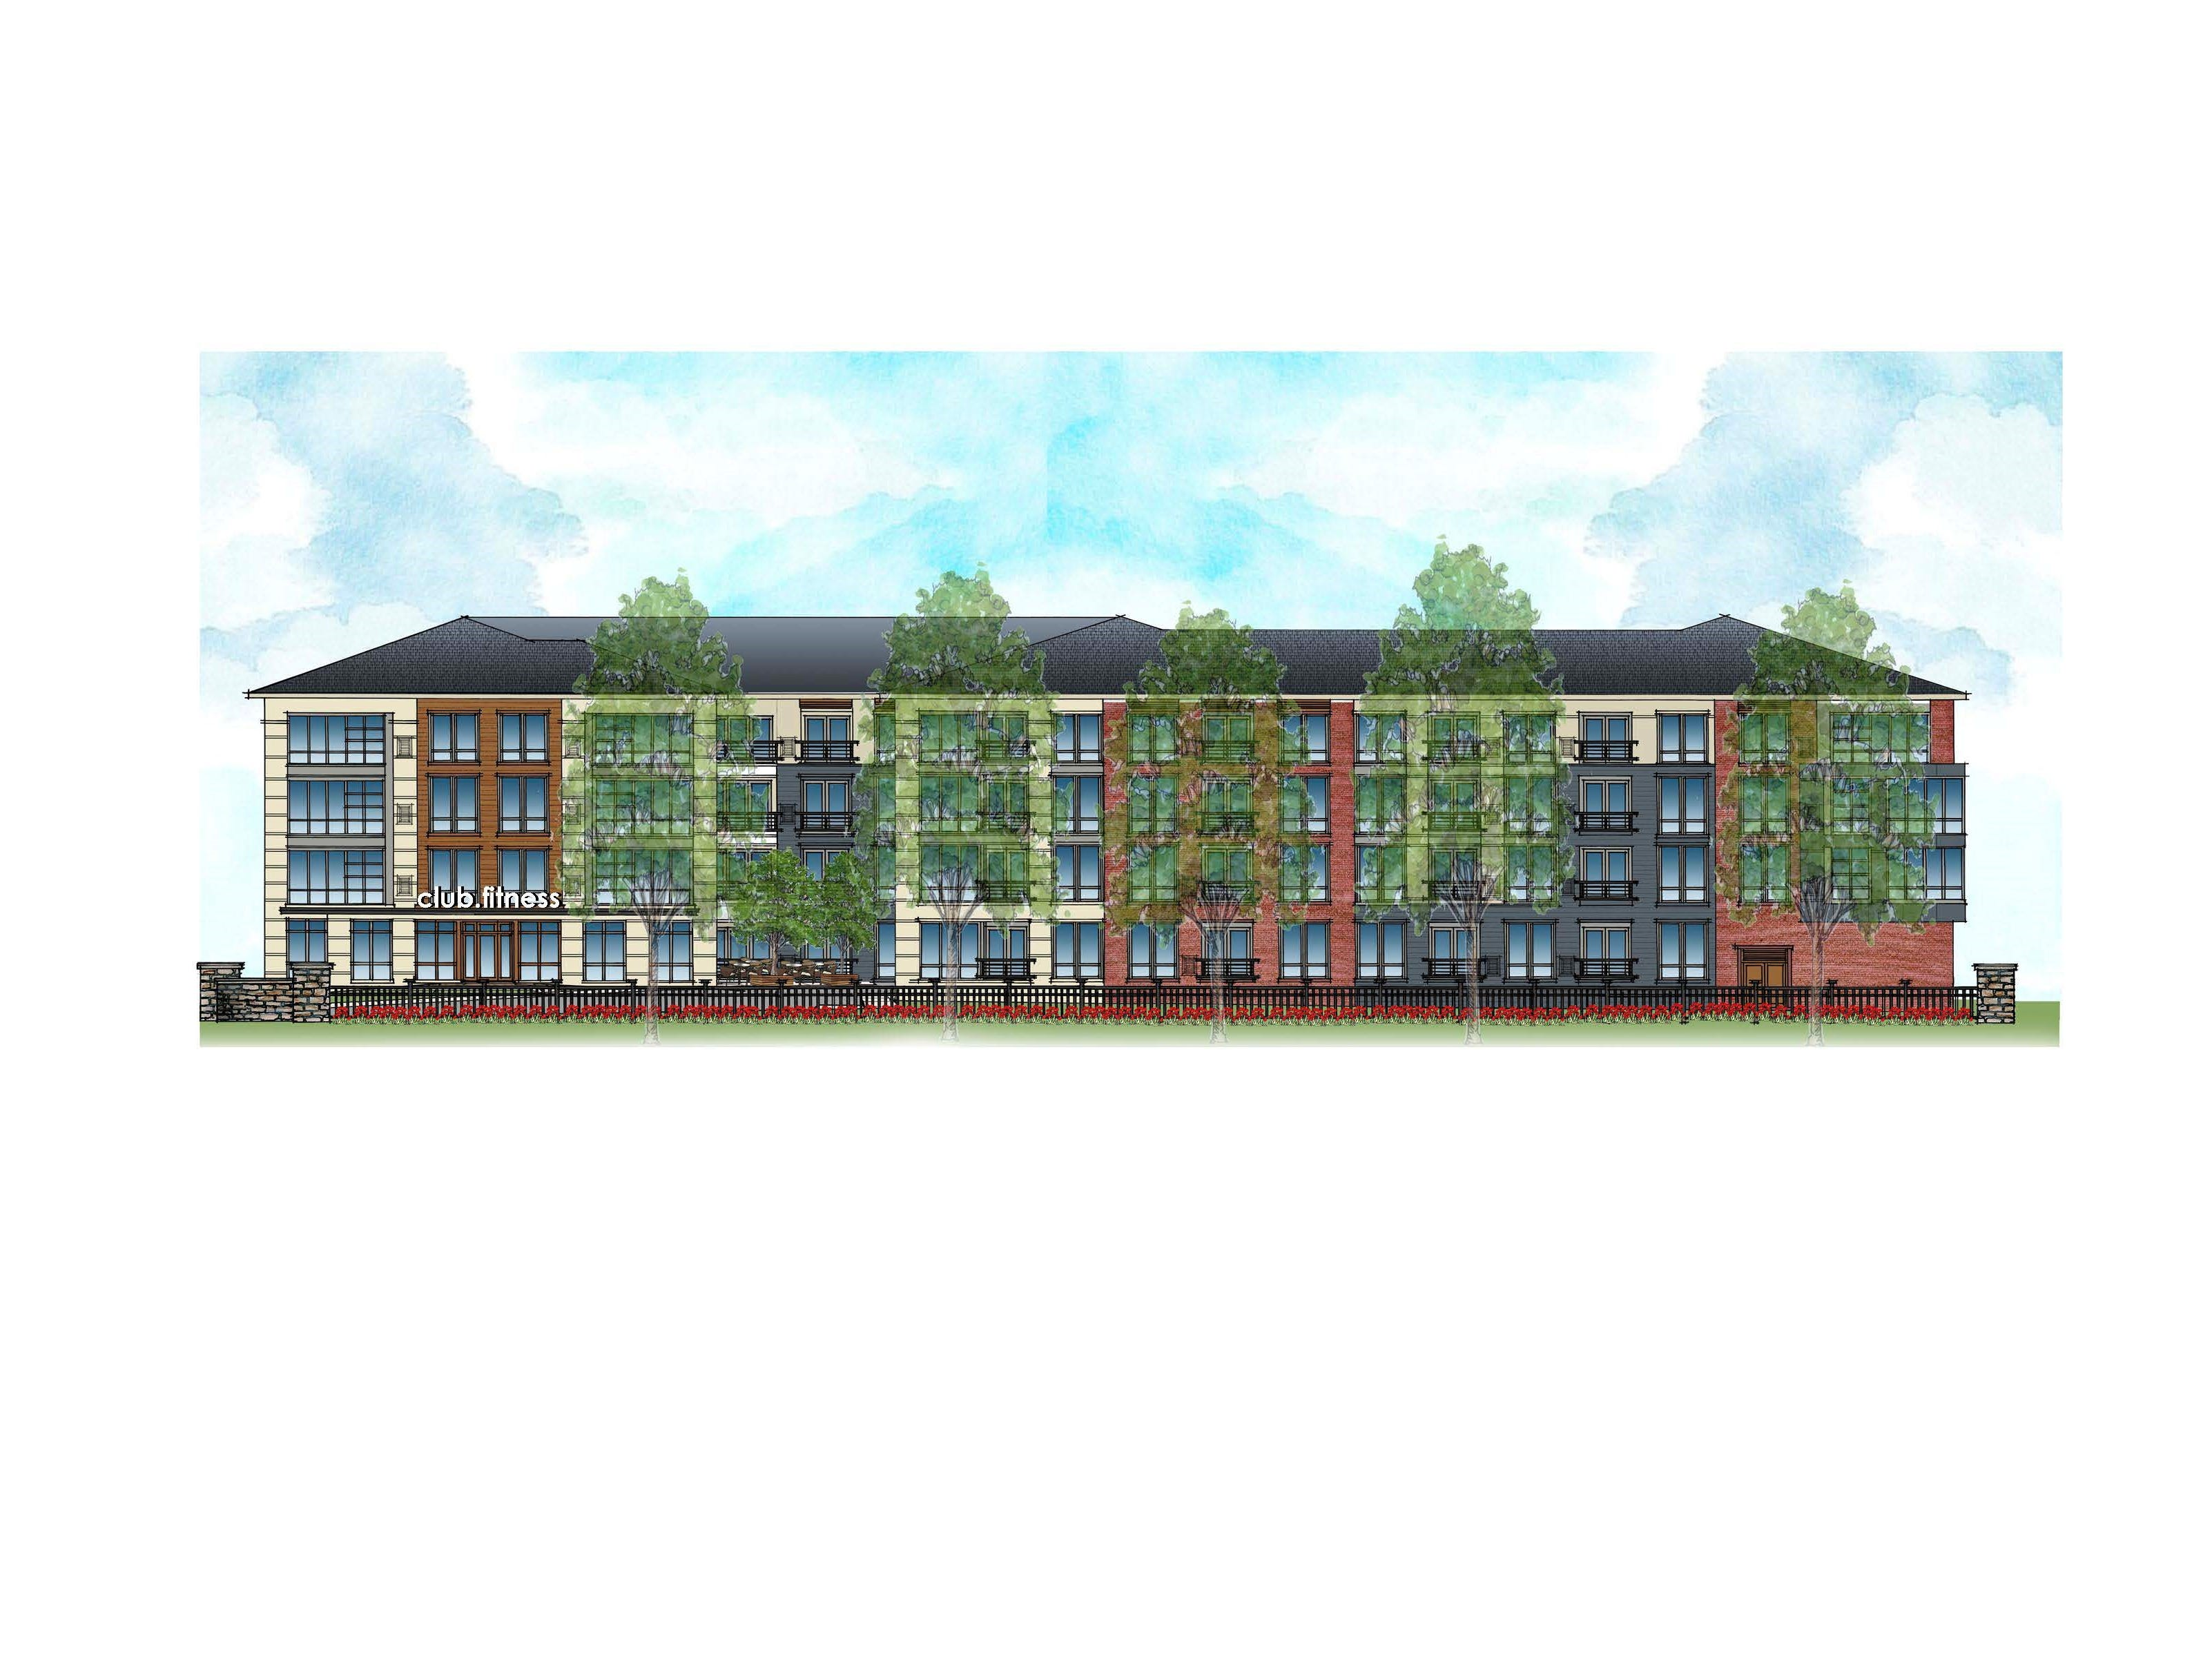 A rendering of The Quinn at Sleepy Hollow in Plainfield.